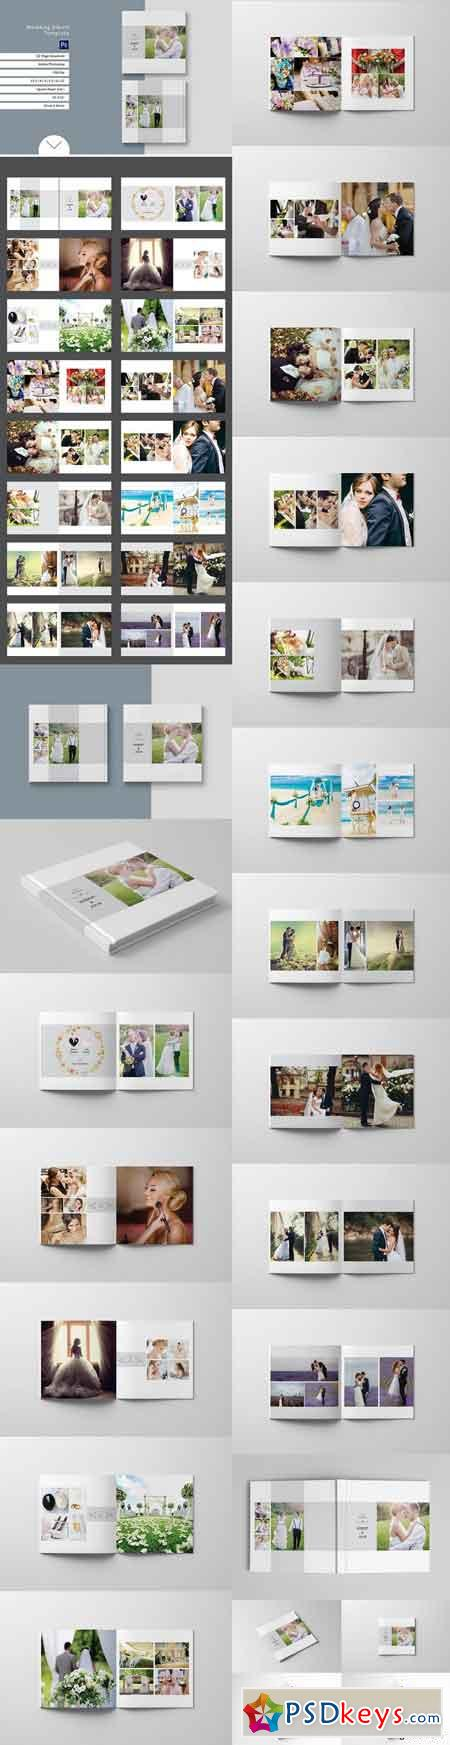 Wedding album template 888911 free download photoshop vector wedding album template 888911 pronofoot35fo Gallery